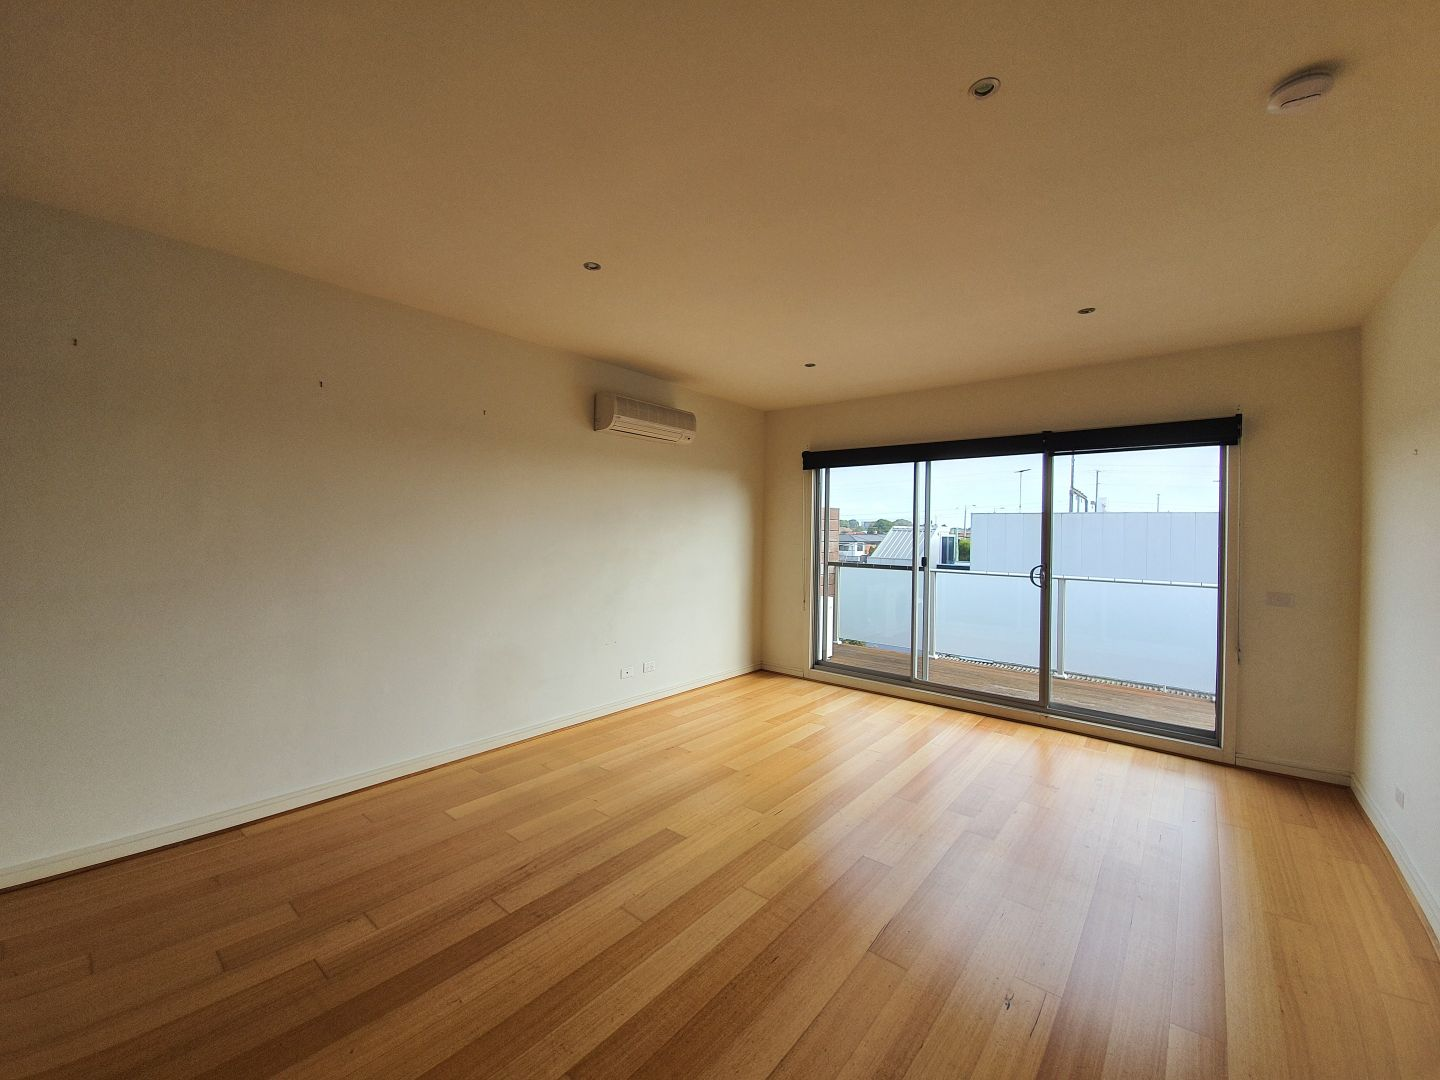 14/120 Patterson Road, Bentleigh VIC 3204, Image 2